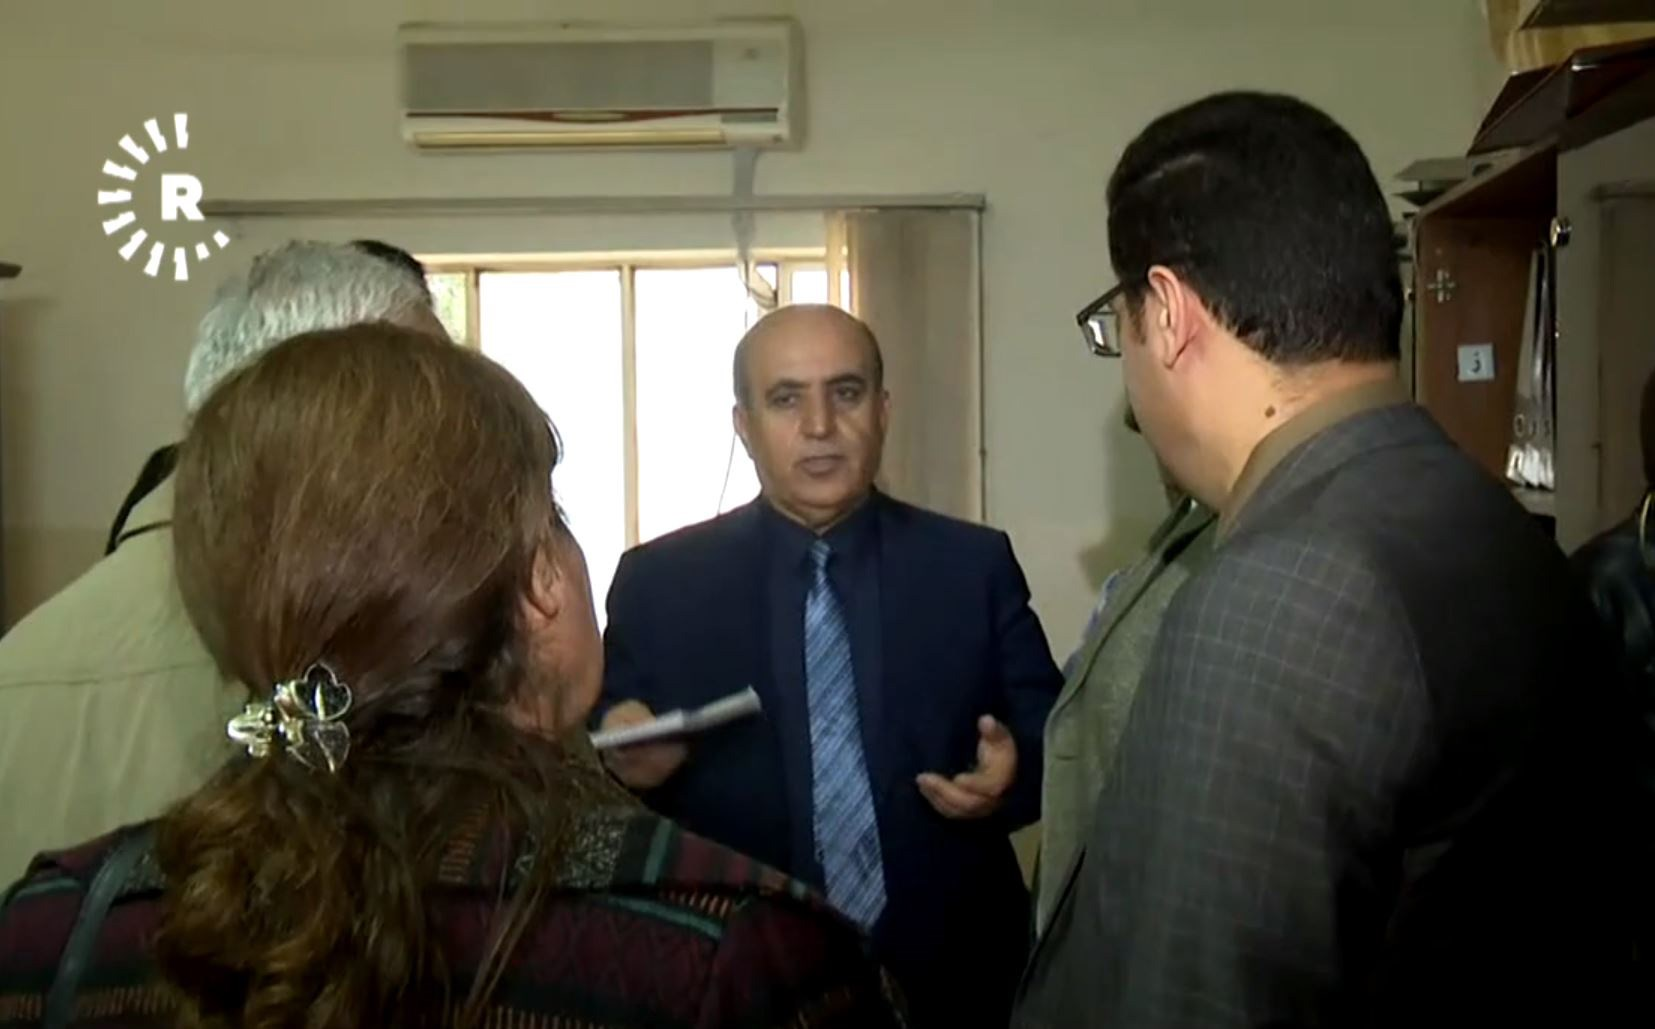 An Iraqi financial oversight committee visited KRG Ministry of Martyrs and Anfal Affairs. Photo: Rudaw TV